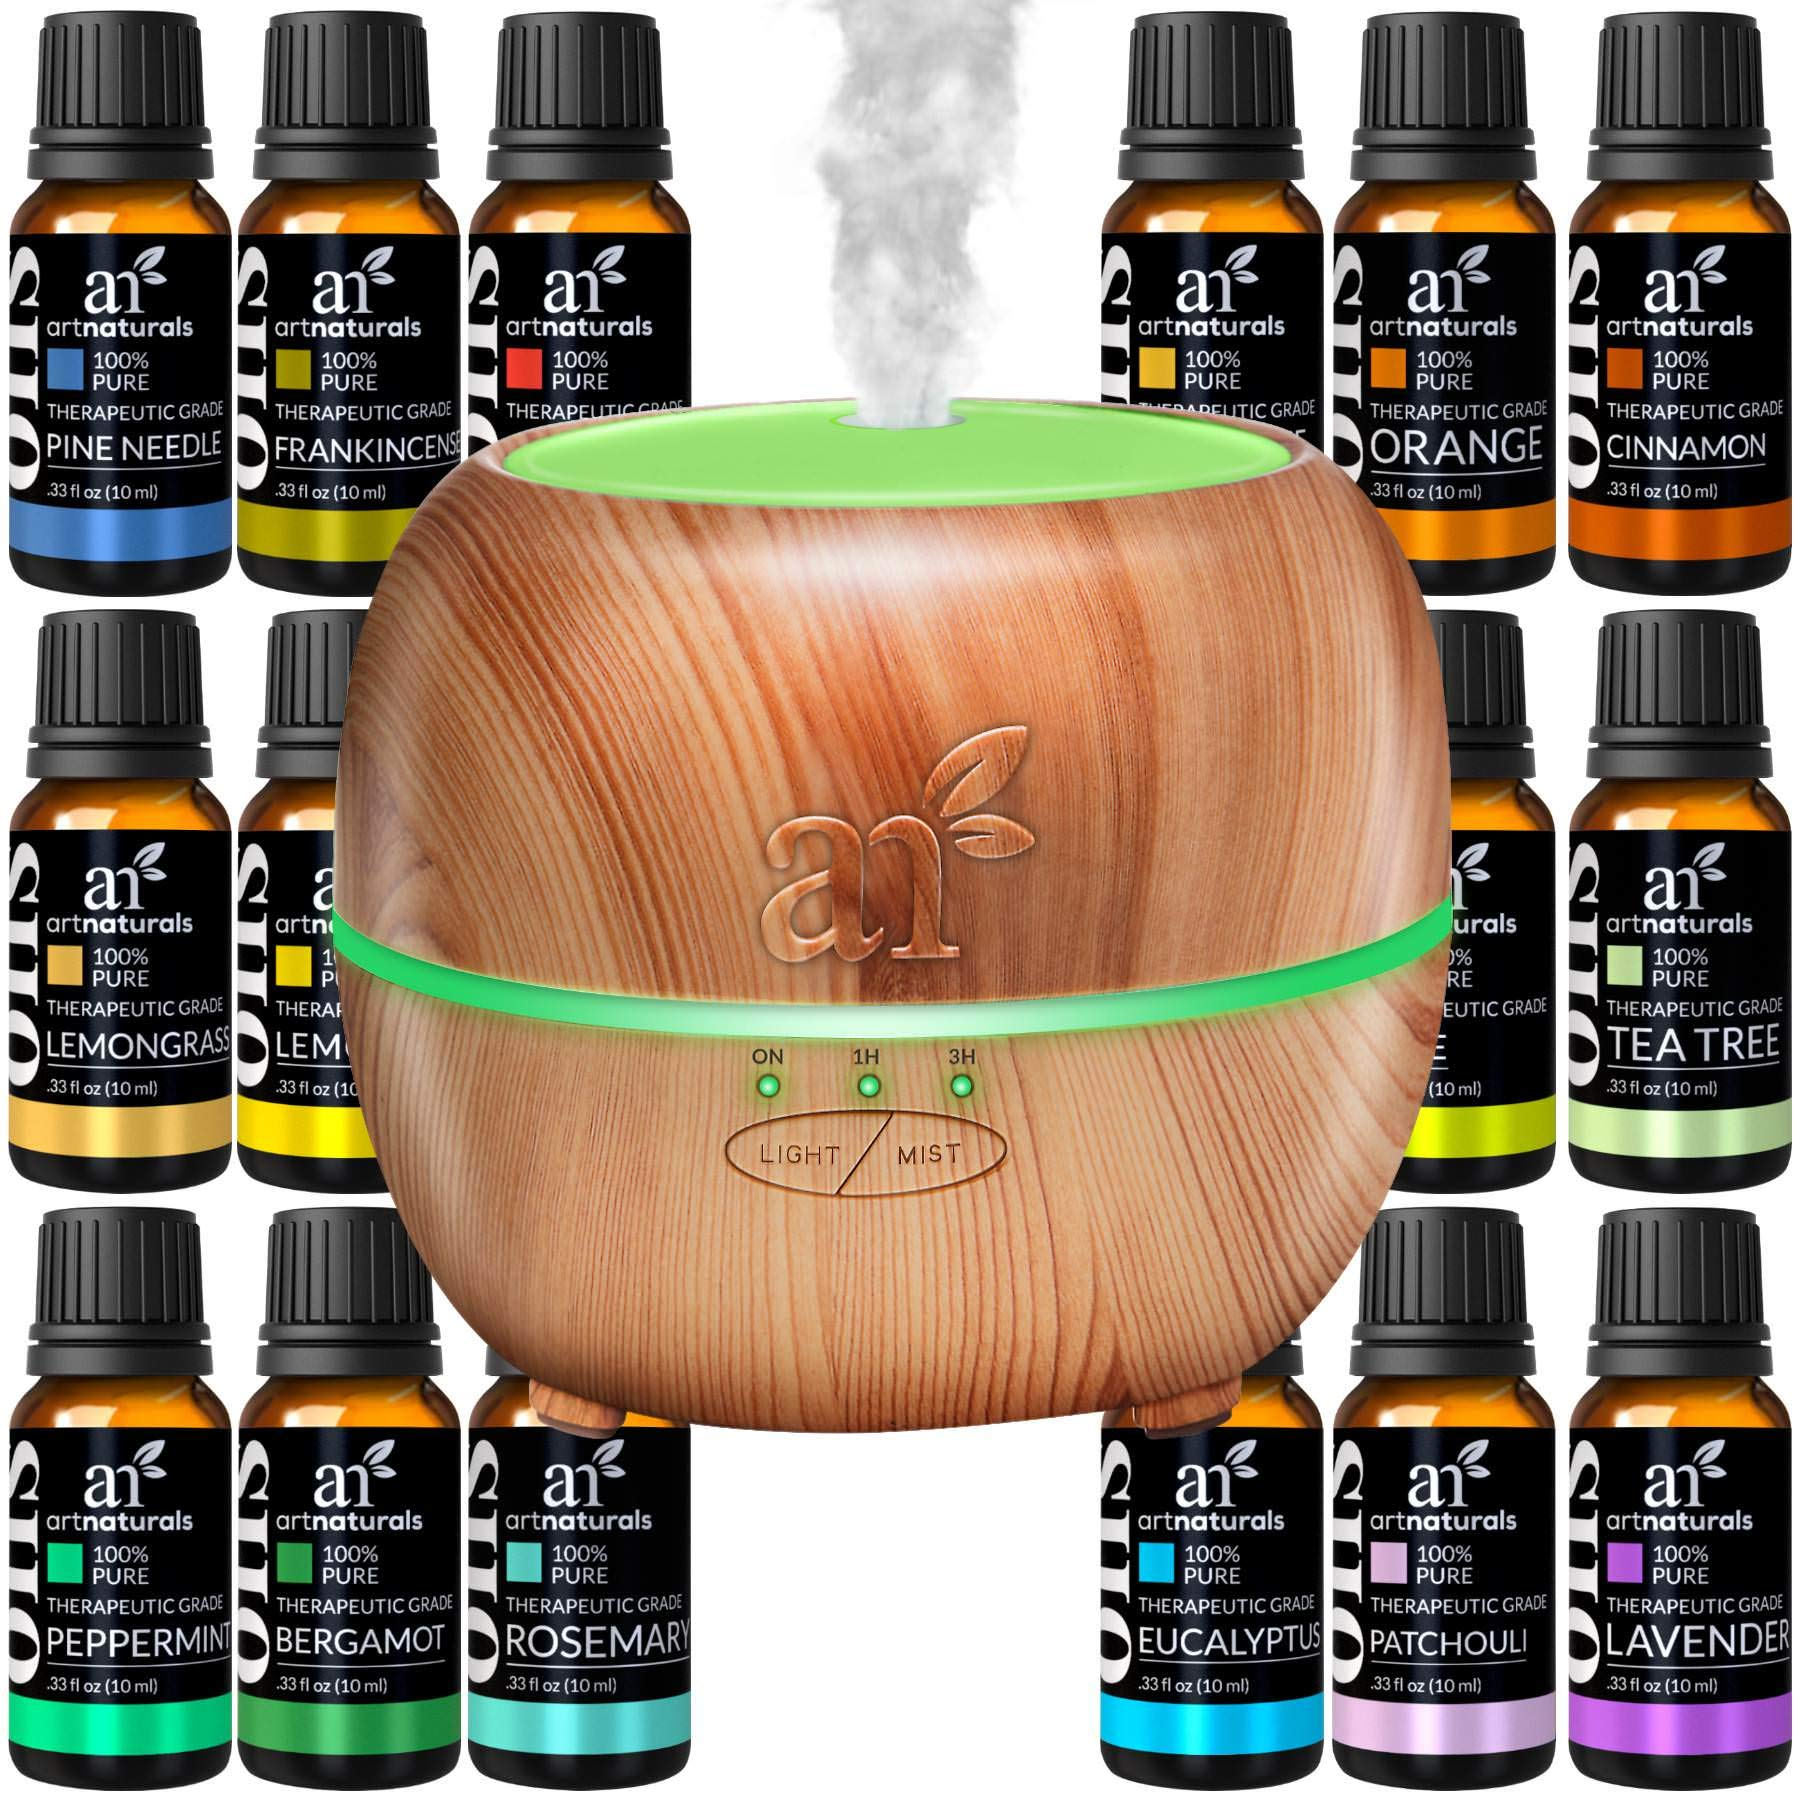 ArtNaturals Aromatherapy Essential Oil and Diffuser Gift Set - (150ml Tank & Top 16 Oils) - Peppermint, Tee Tree, Lavender & Eucalyptus - Auto Shut-Off and 7 Color LED Lights - Therapeutic Grade by ArtNaturals